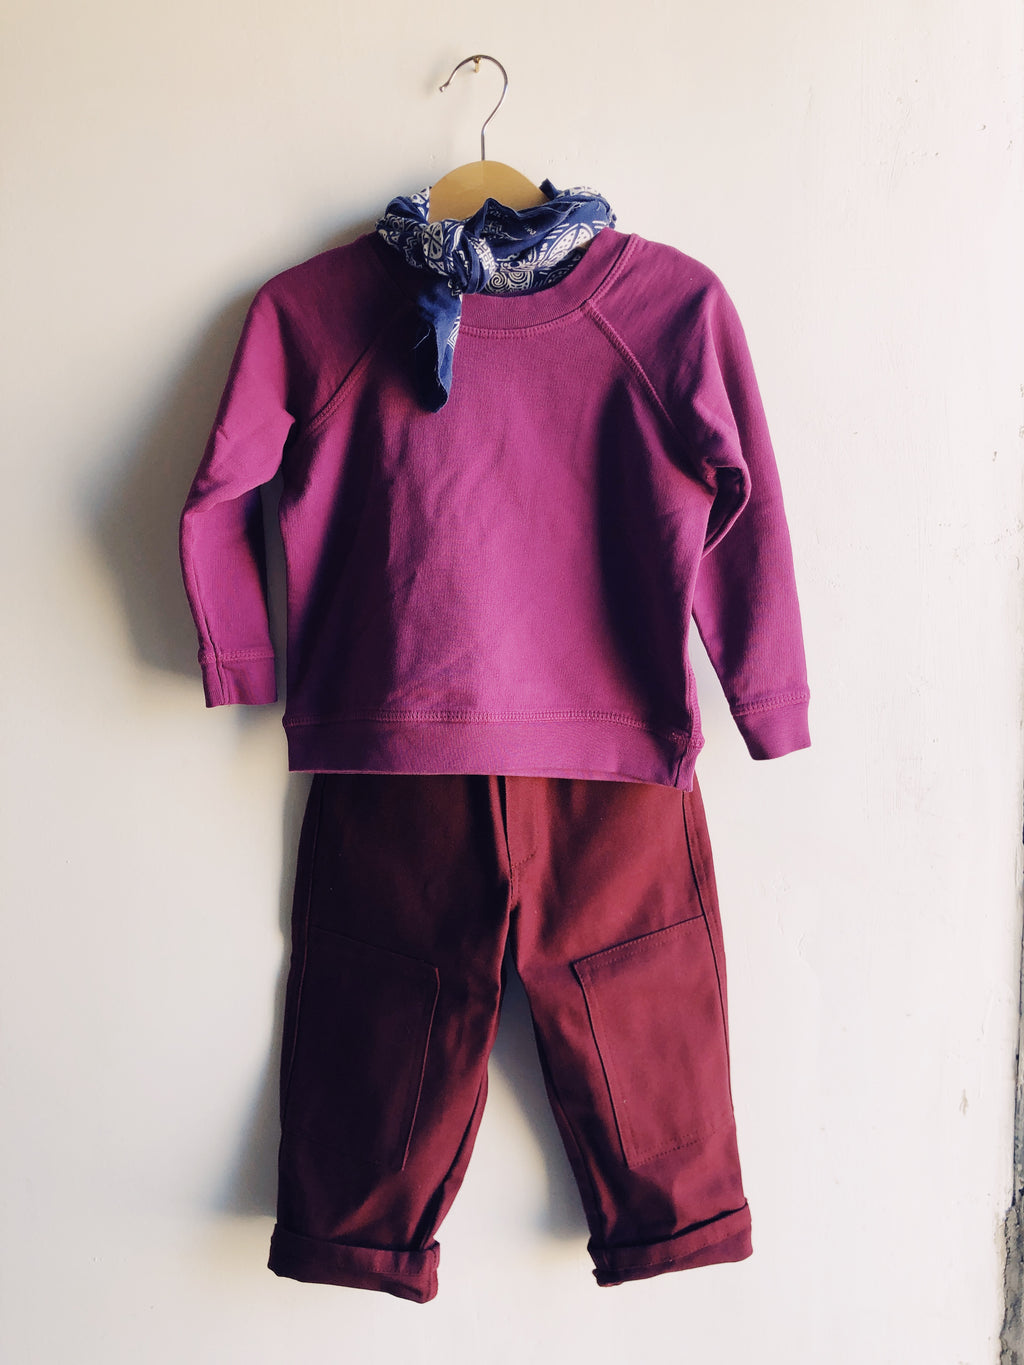 The Knee Patch Pant Plum